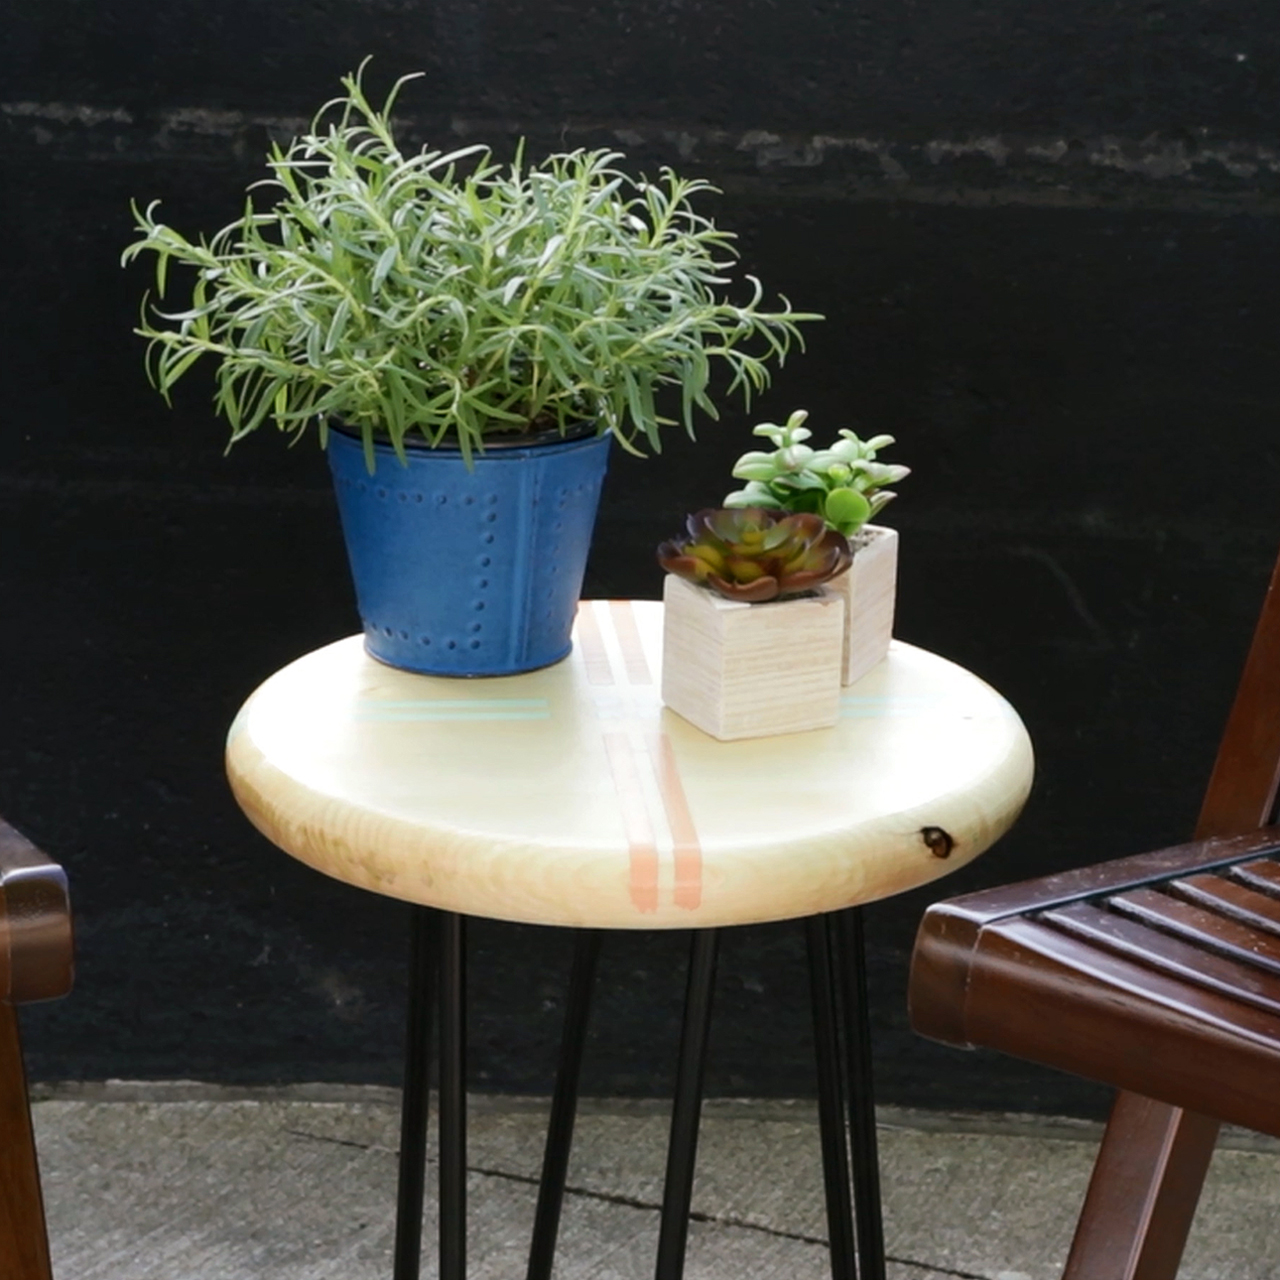 diy outdoor side table with hairpin legs better homes gardens leg blue accent green container plants half circle kitchen bedside design ideas gallerie beds stackable snack tables